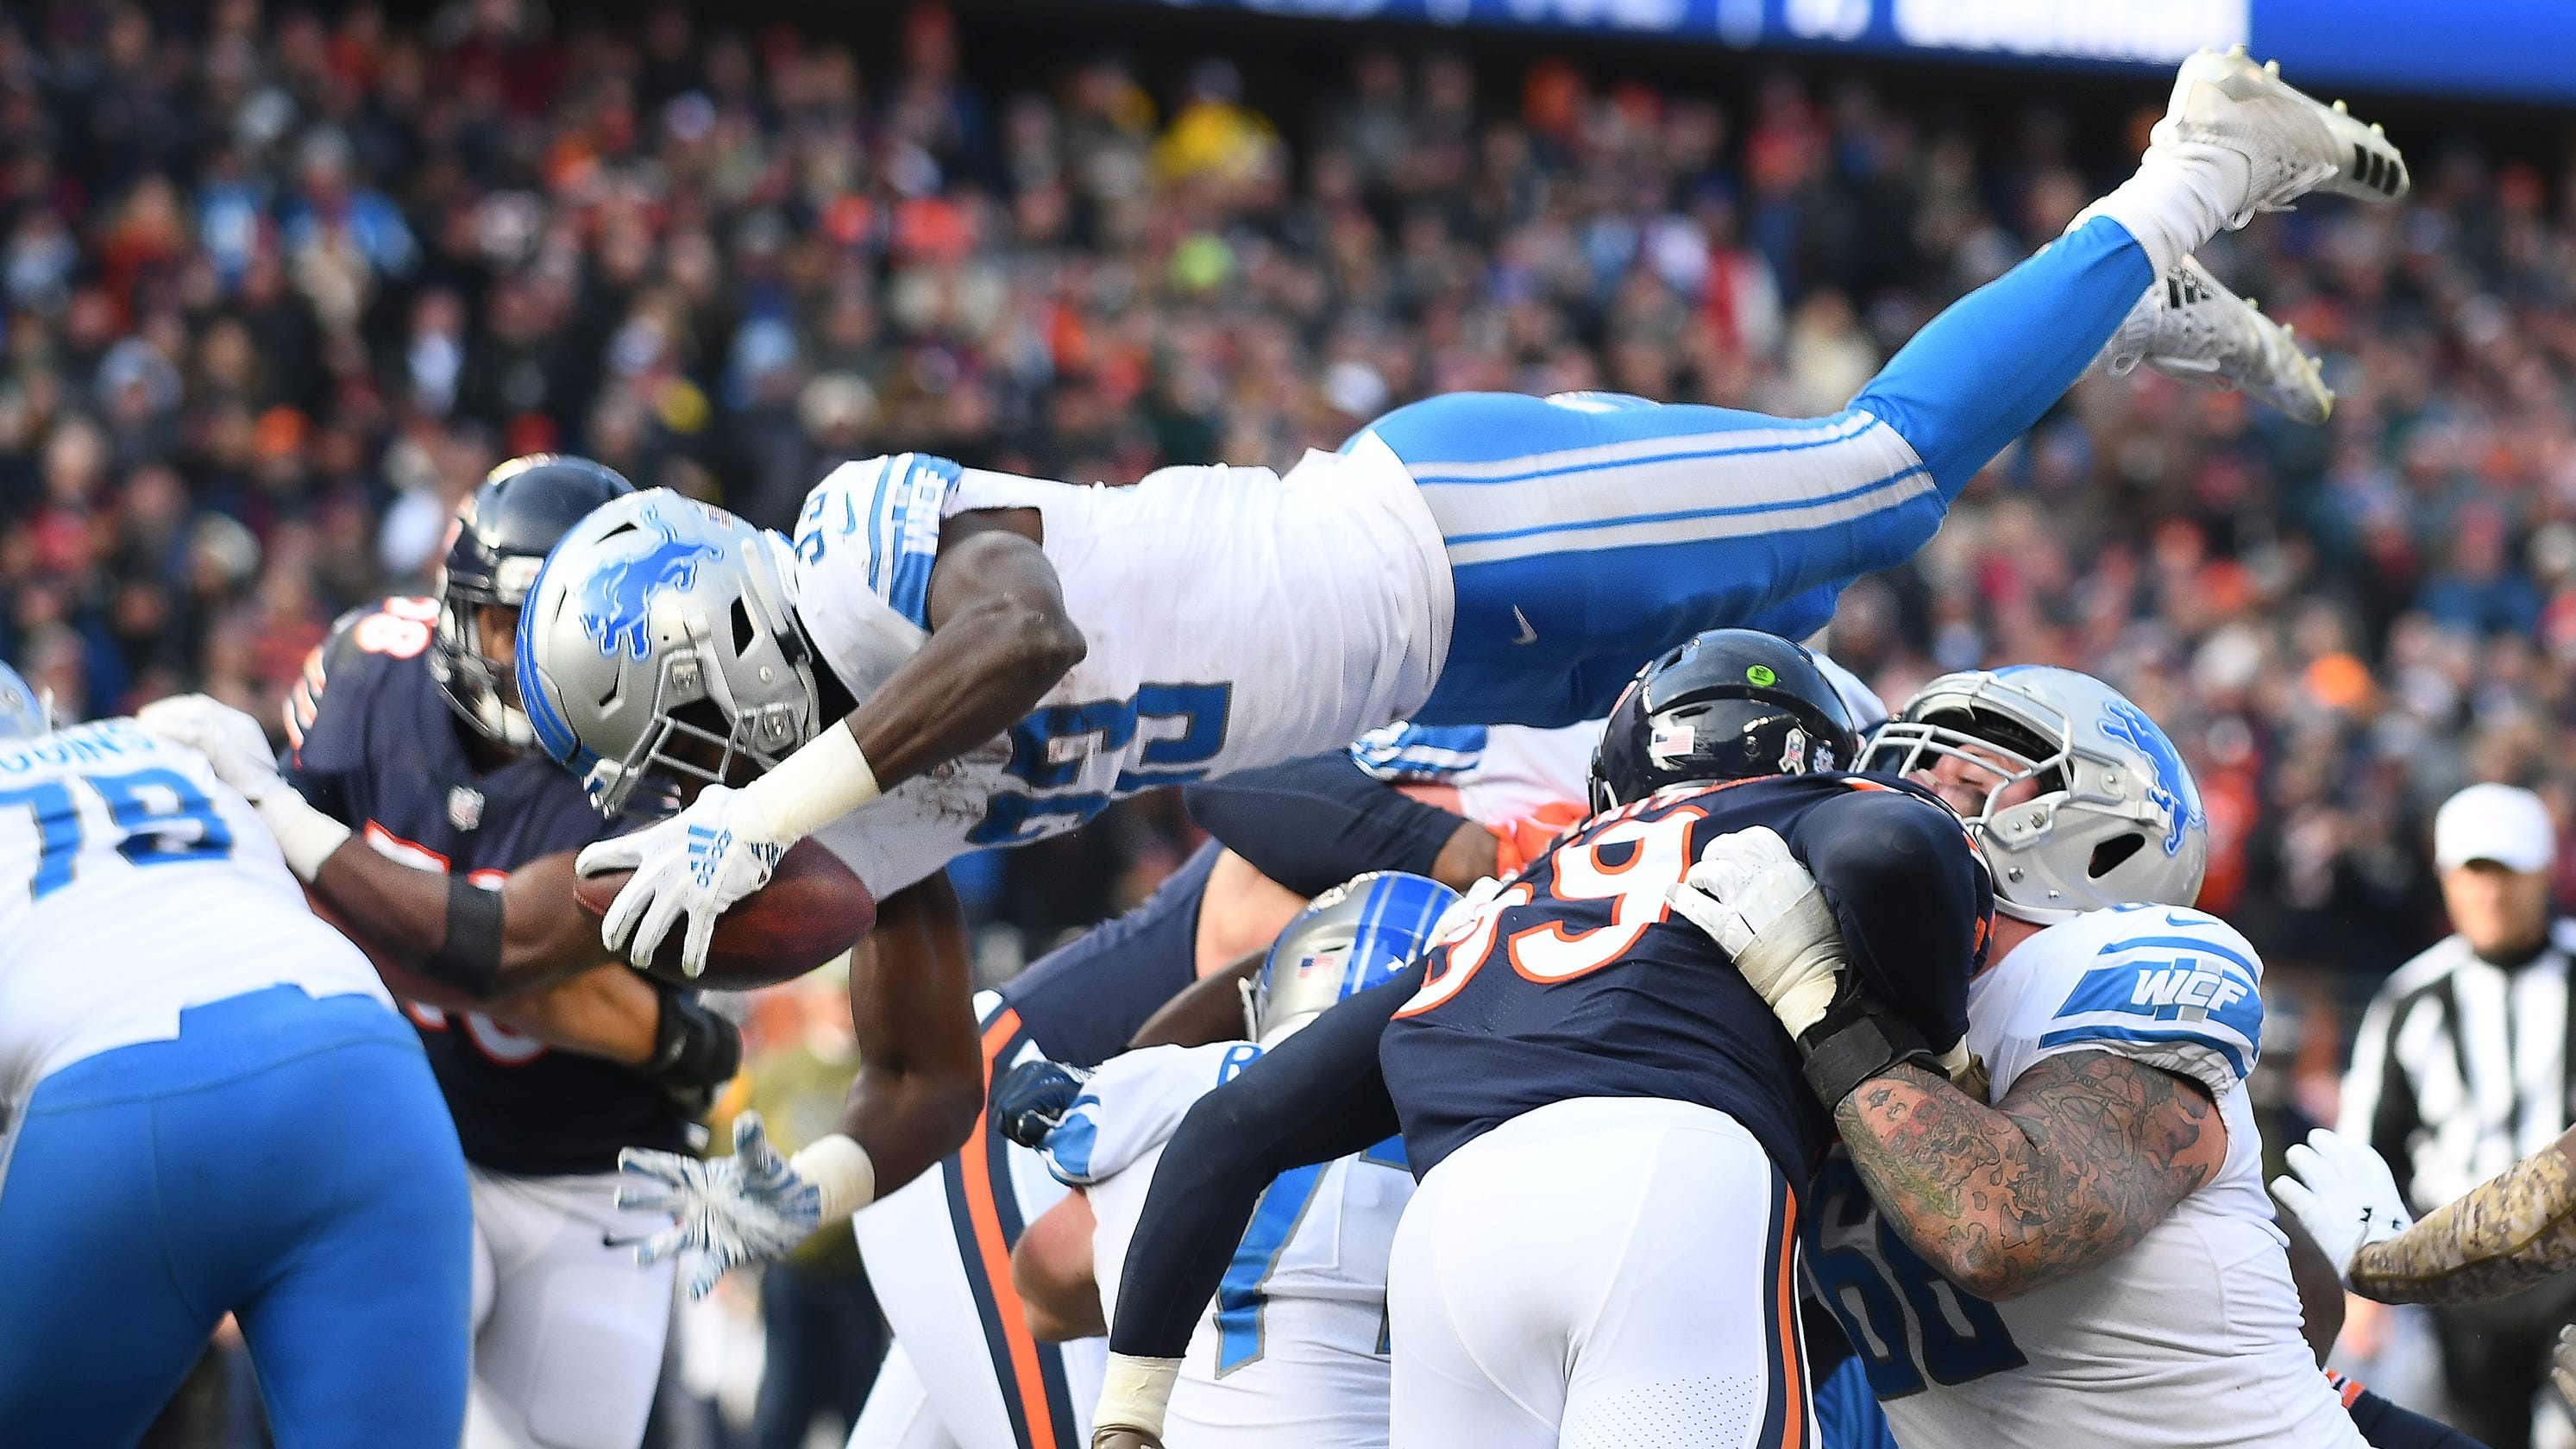 Best Pass Catching Running Backs 2020 Lions 2019 draft preview: Running back remains a long term need